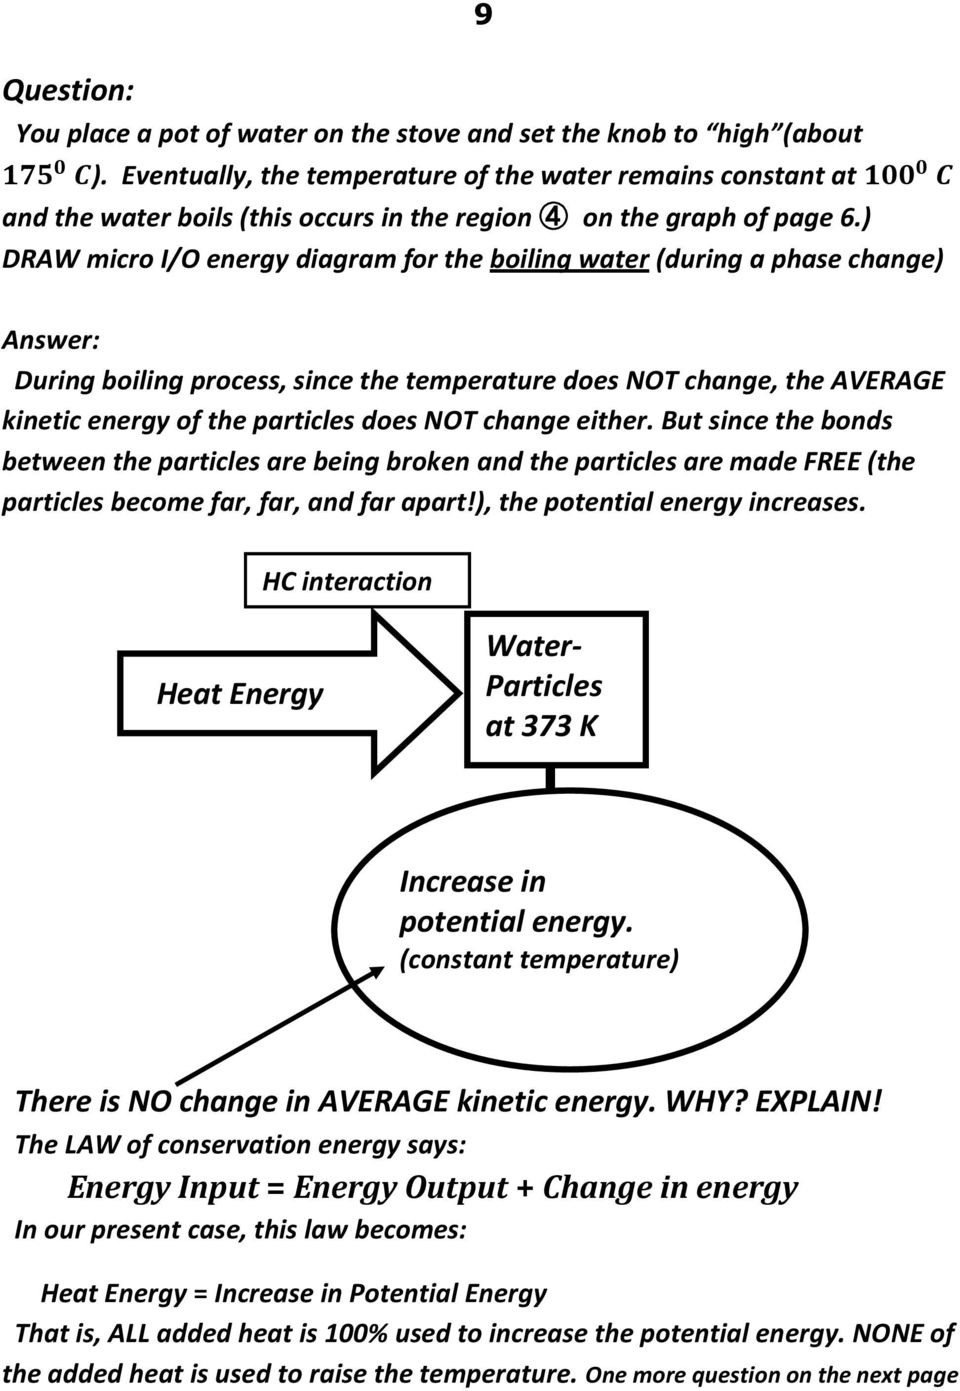 ) DRAW micro I/O energy diagram for the boiling water (during a phase change) Answer: During boiling process, since the temperature does NOT change, the AVERAGE kinetic energy of the particles does